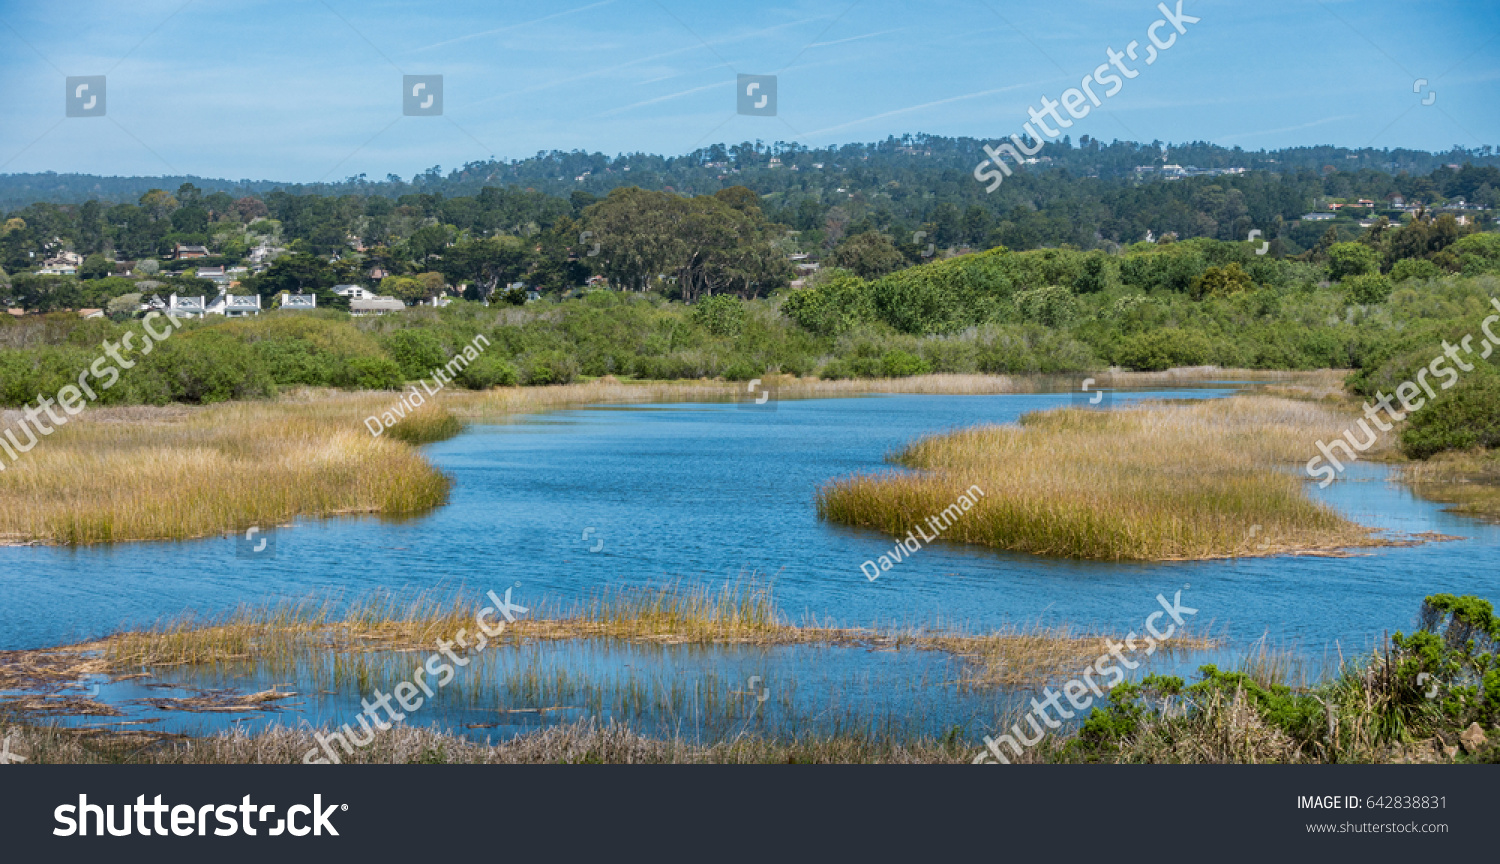 Marshland at the mouth of the Carmel Valley river basin in Carmel by the Sea, California.